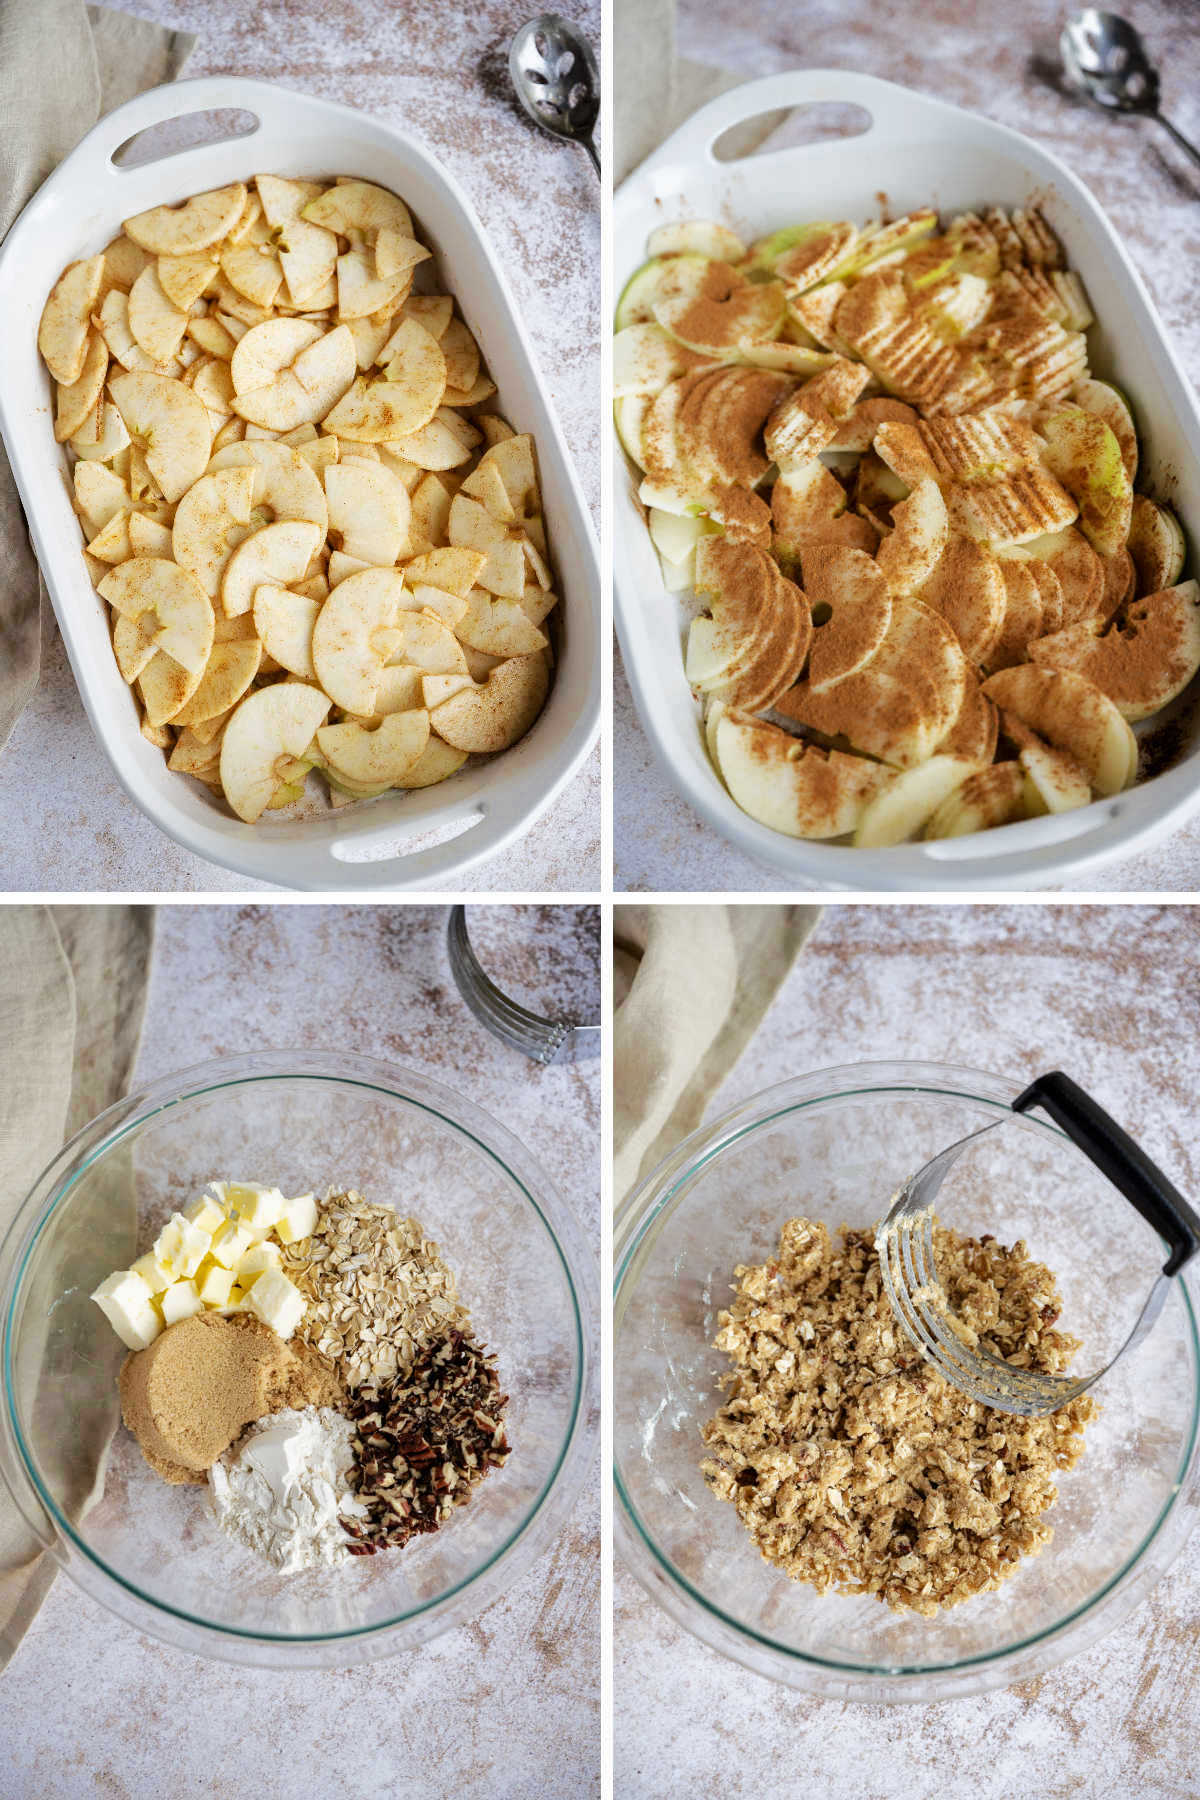 steps for preparing apple crisp: sliced apples in baking dish; sprinkle with sugar and cinnamon; combine ingredients for crumble topping.